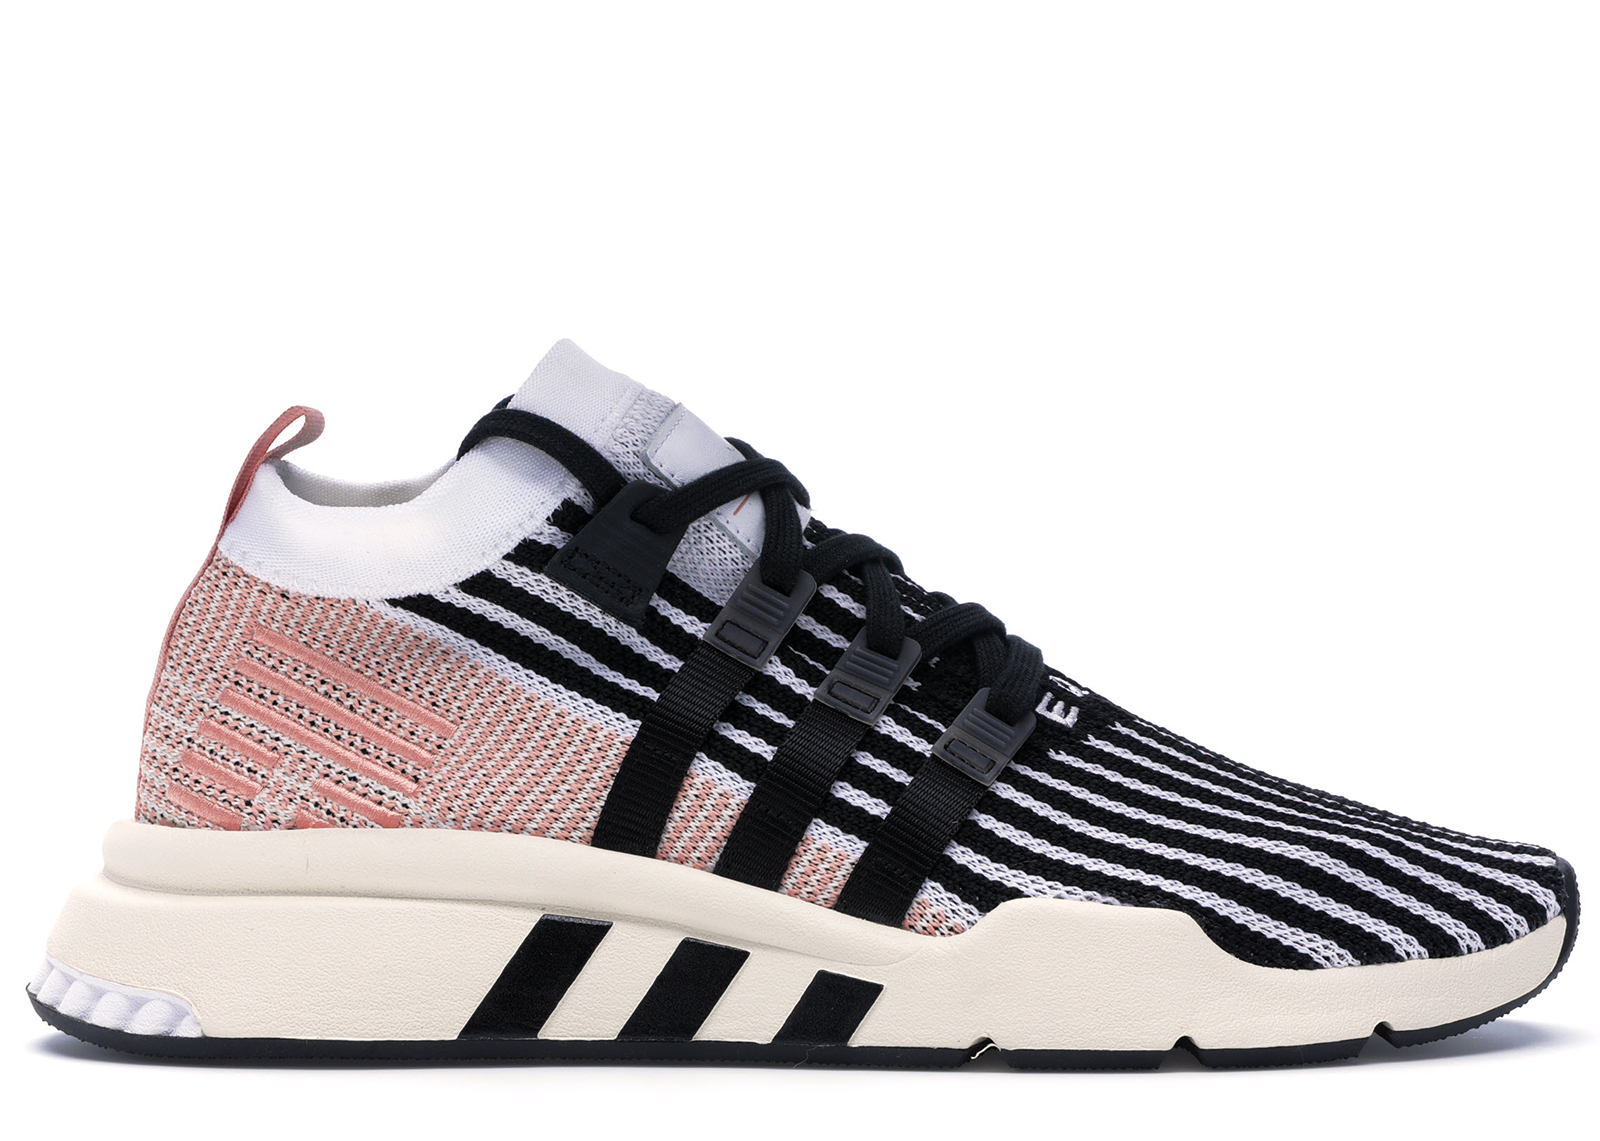 adidas EQT Support Mid ADV Core Black Trace Pink Releasing